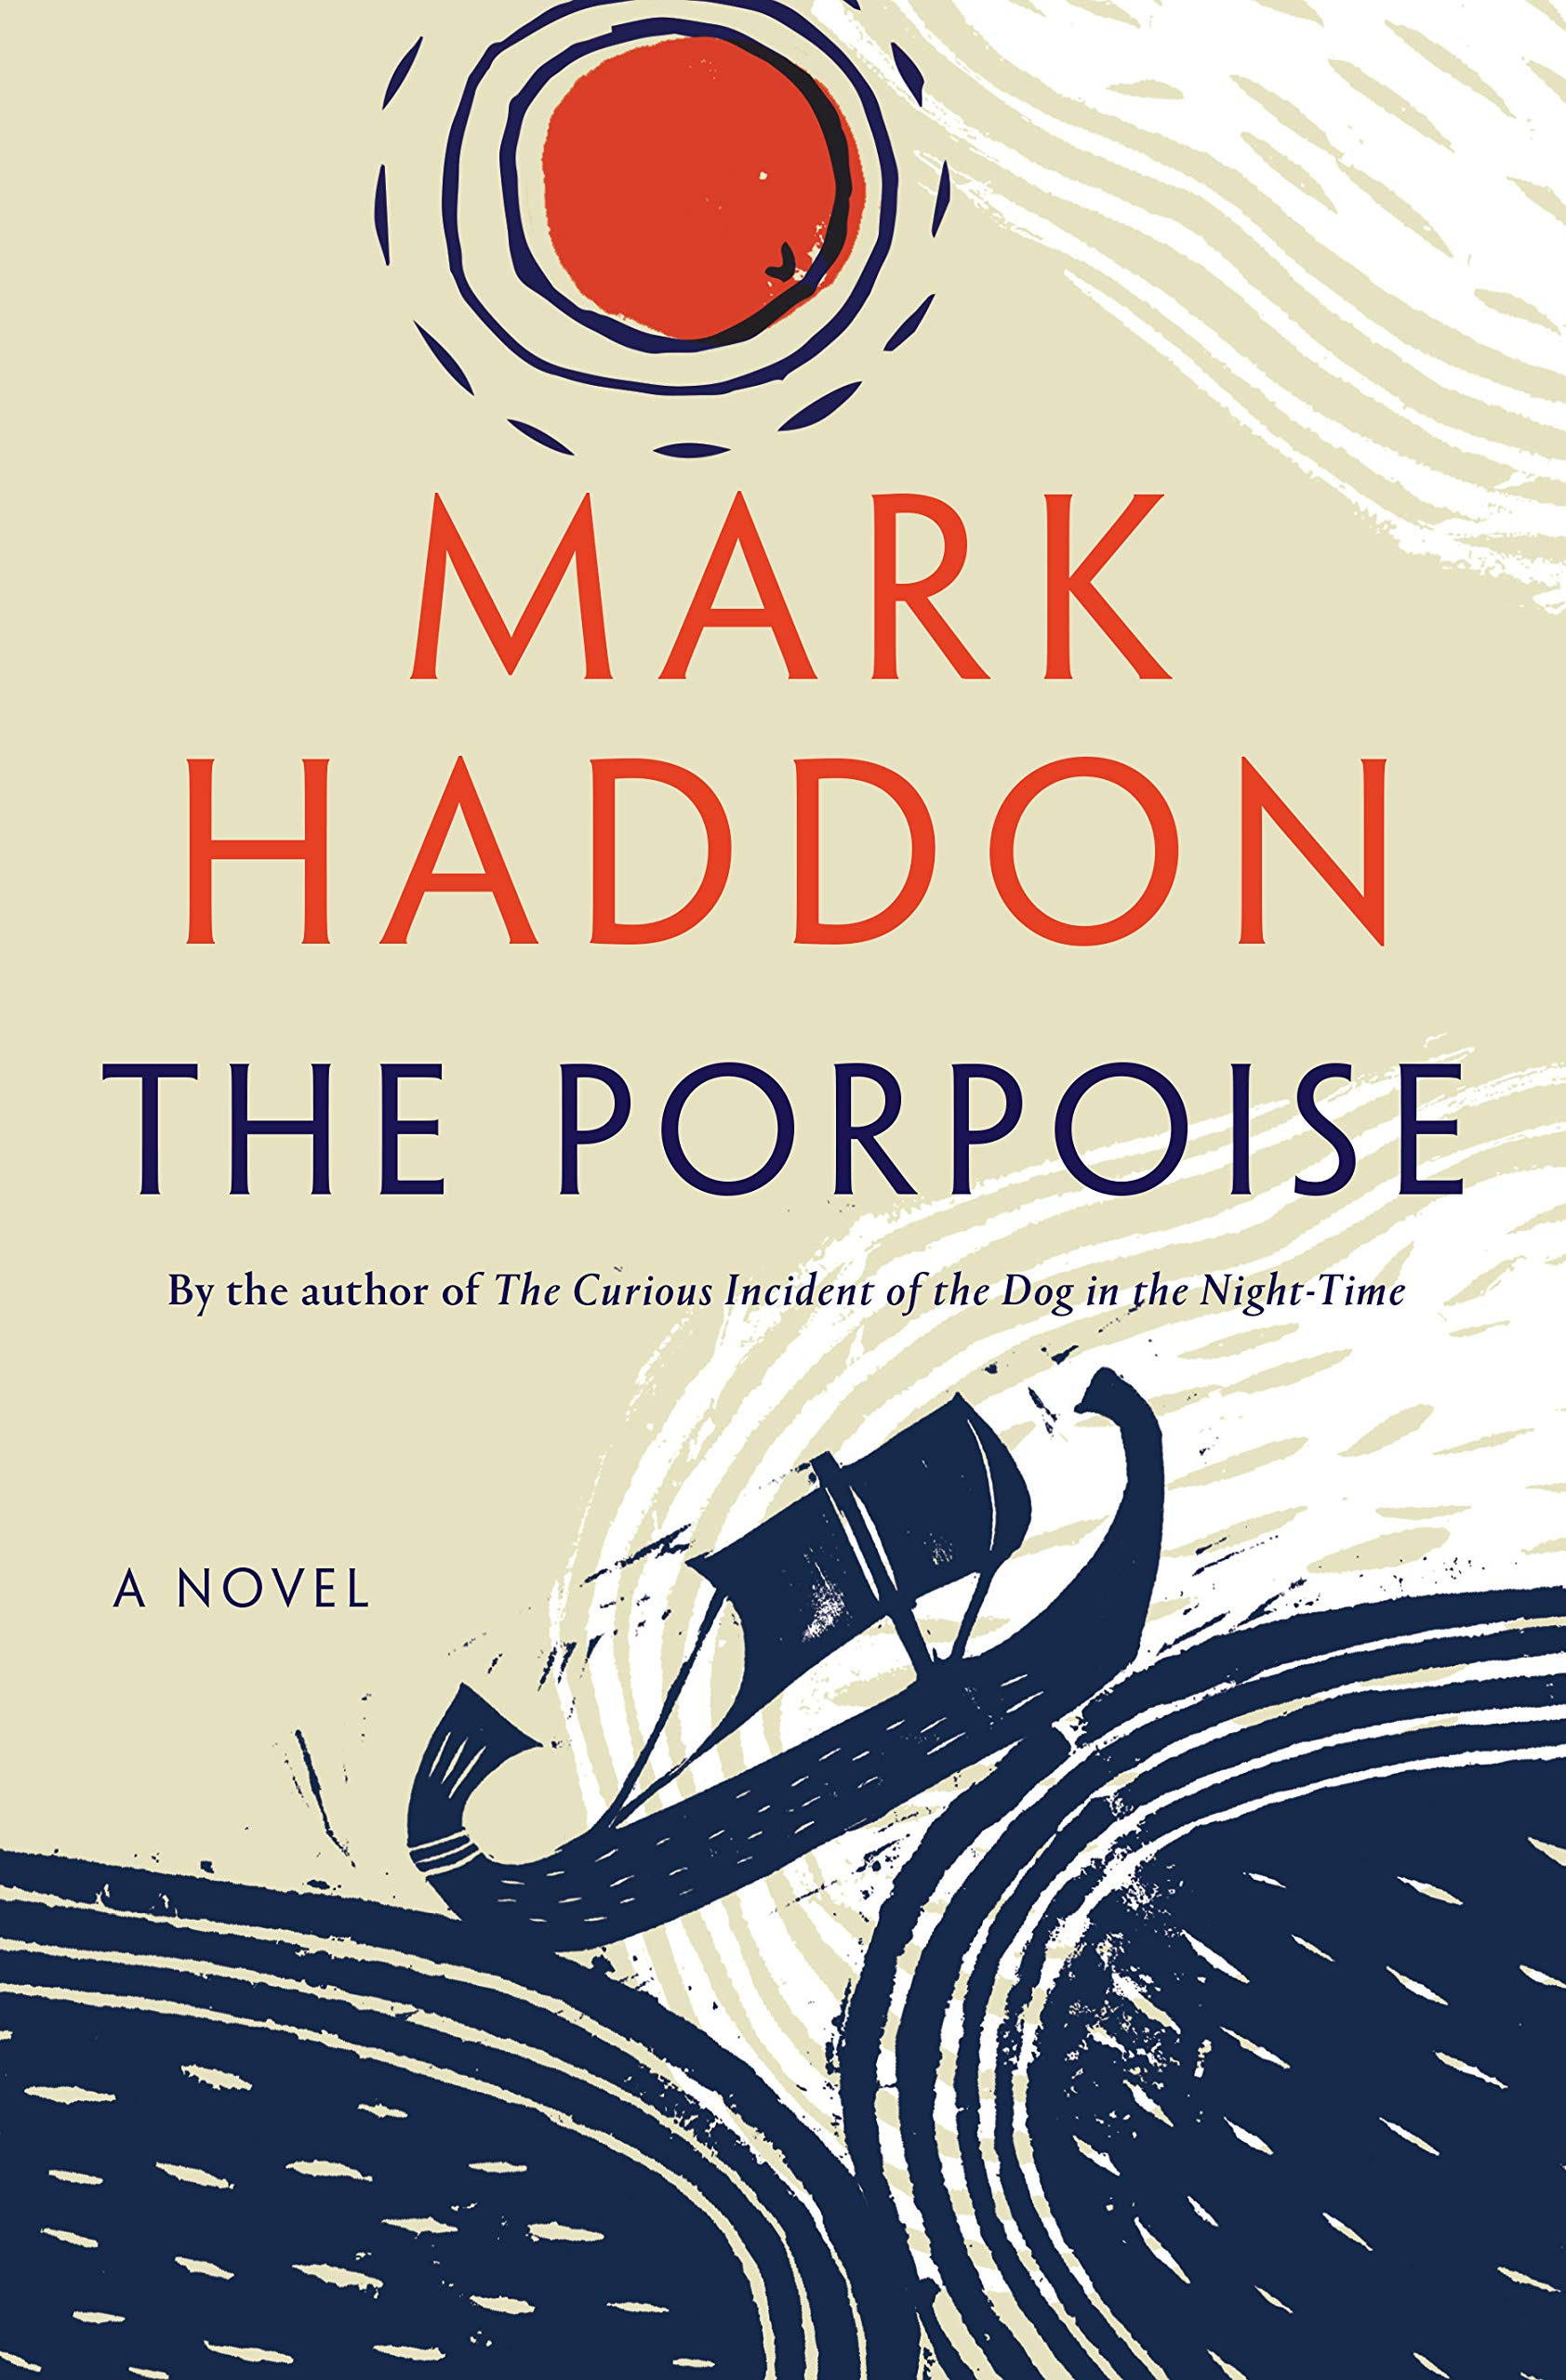 Dumbo Lit Book Club: The Porpoise by Mark Haddon